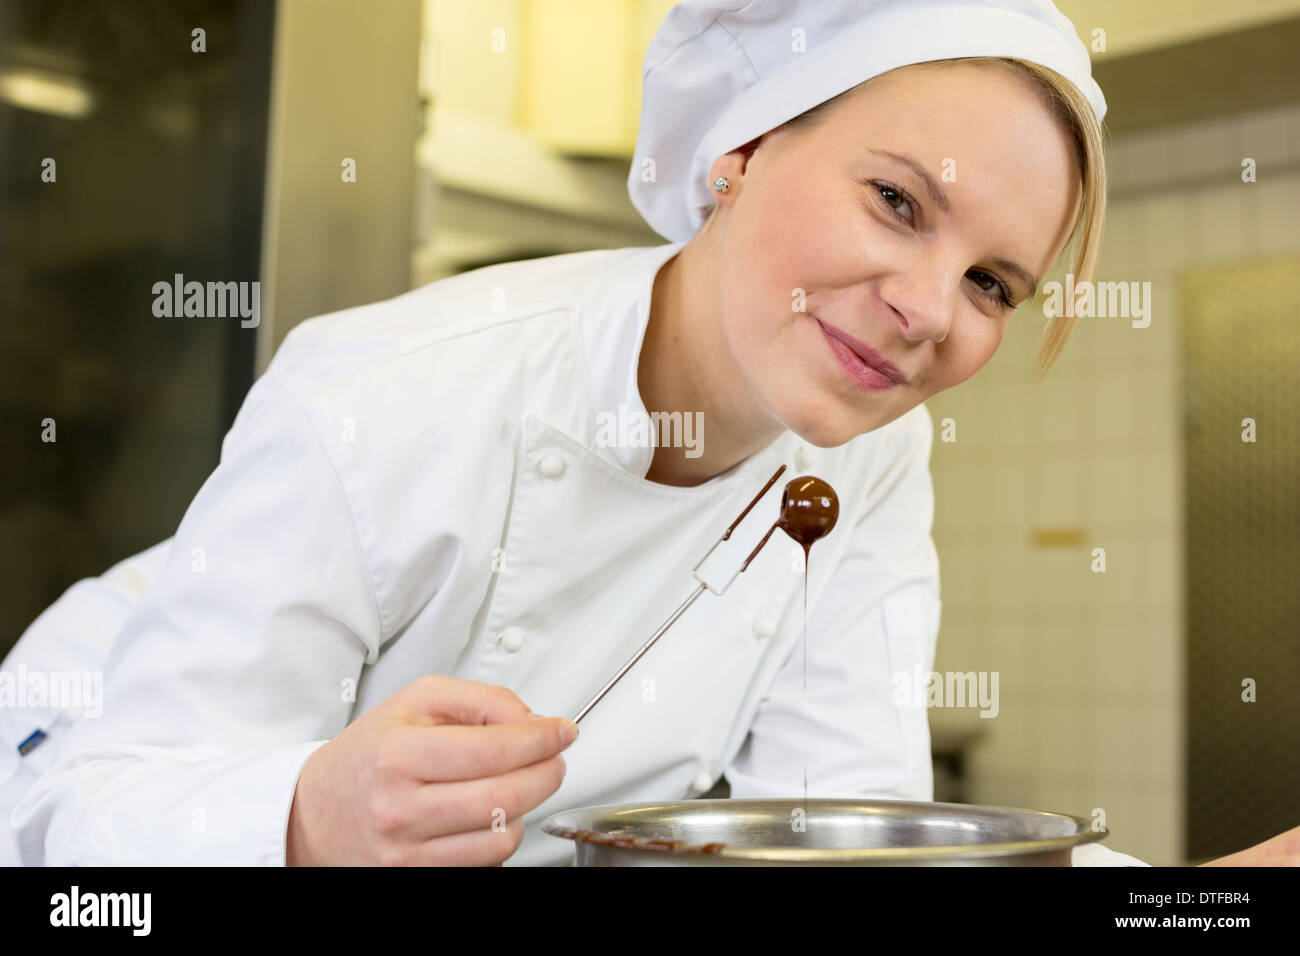 confectioner producing filled chocolates in confectionery - Stock Image